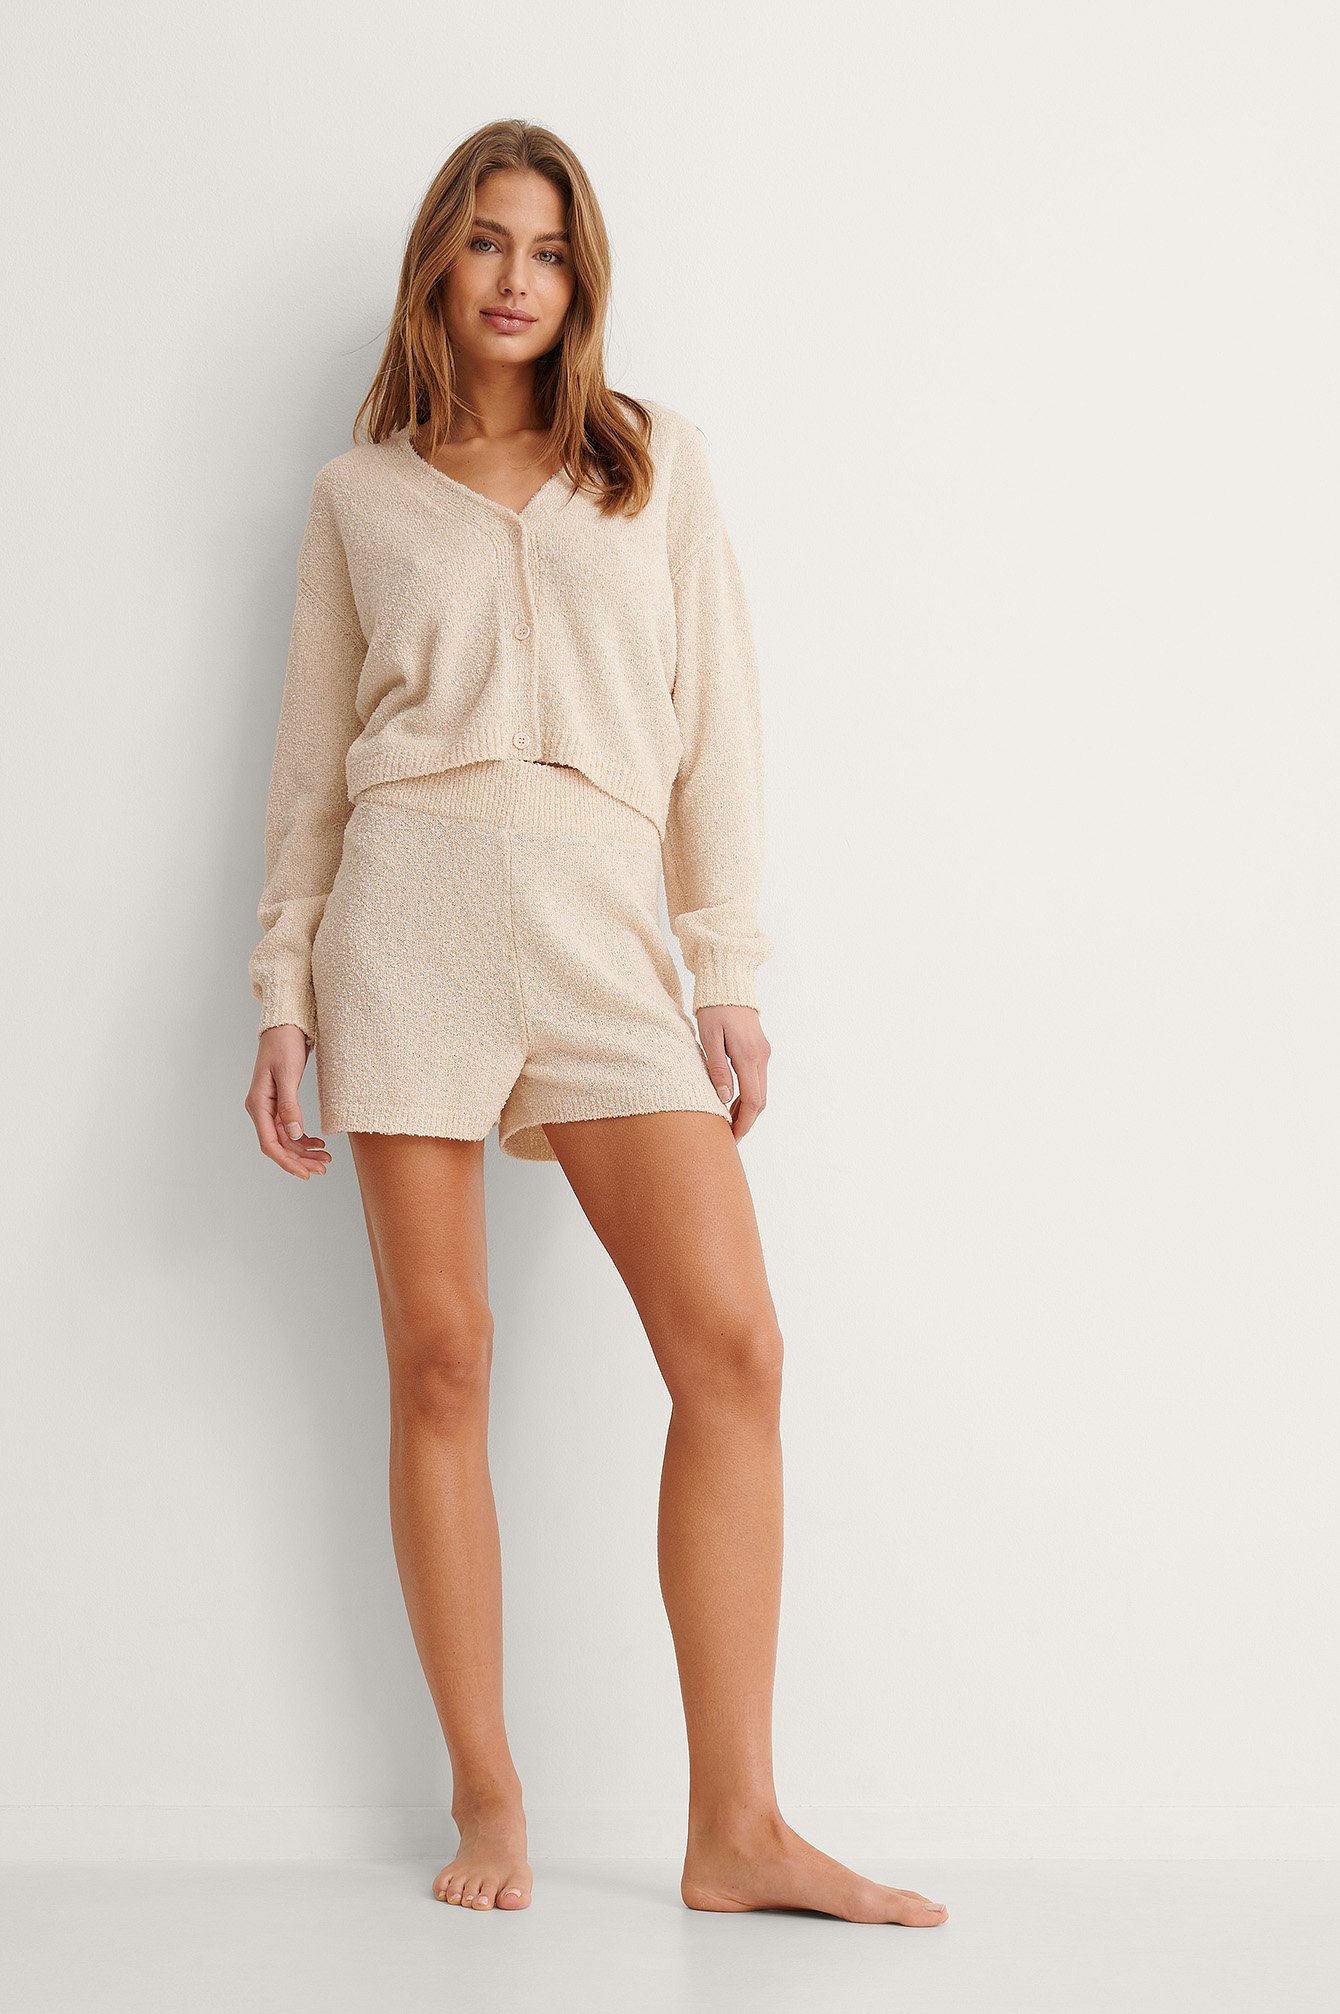 Light Beige Weite Strickshorts